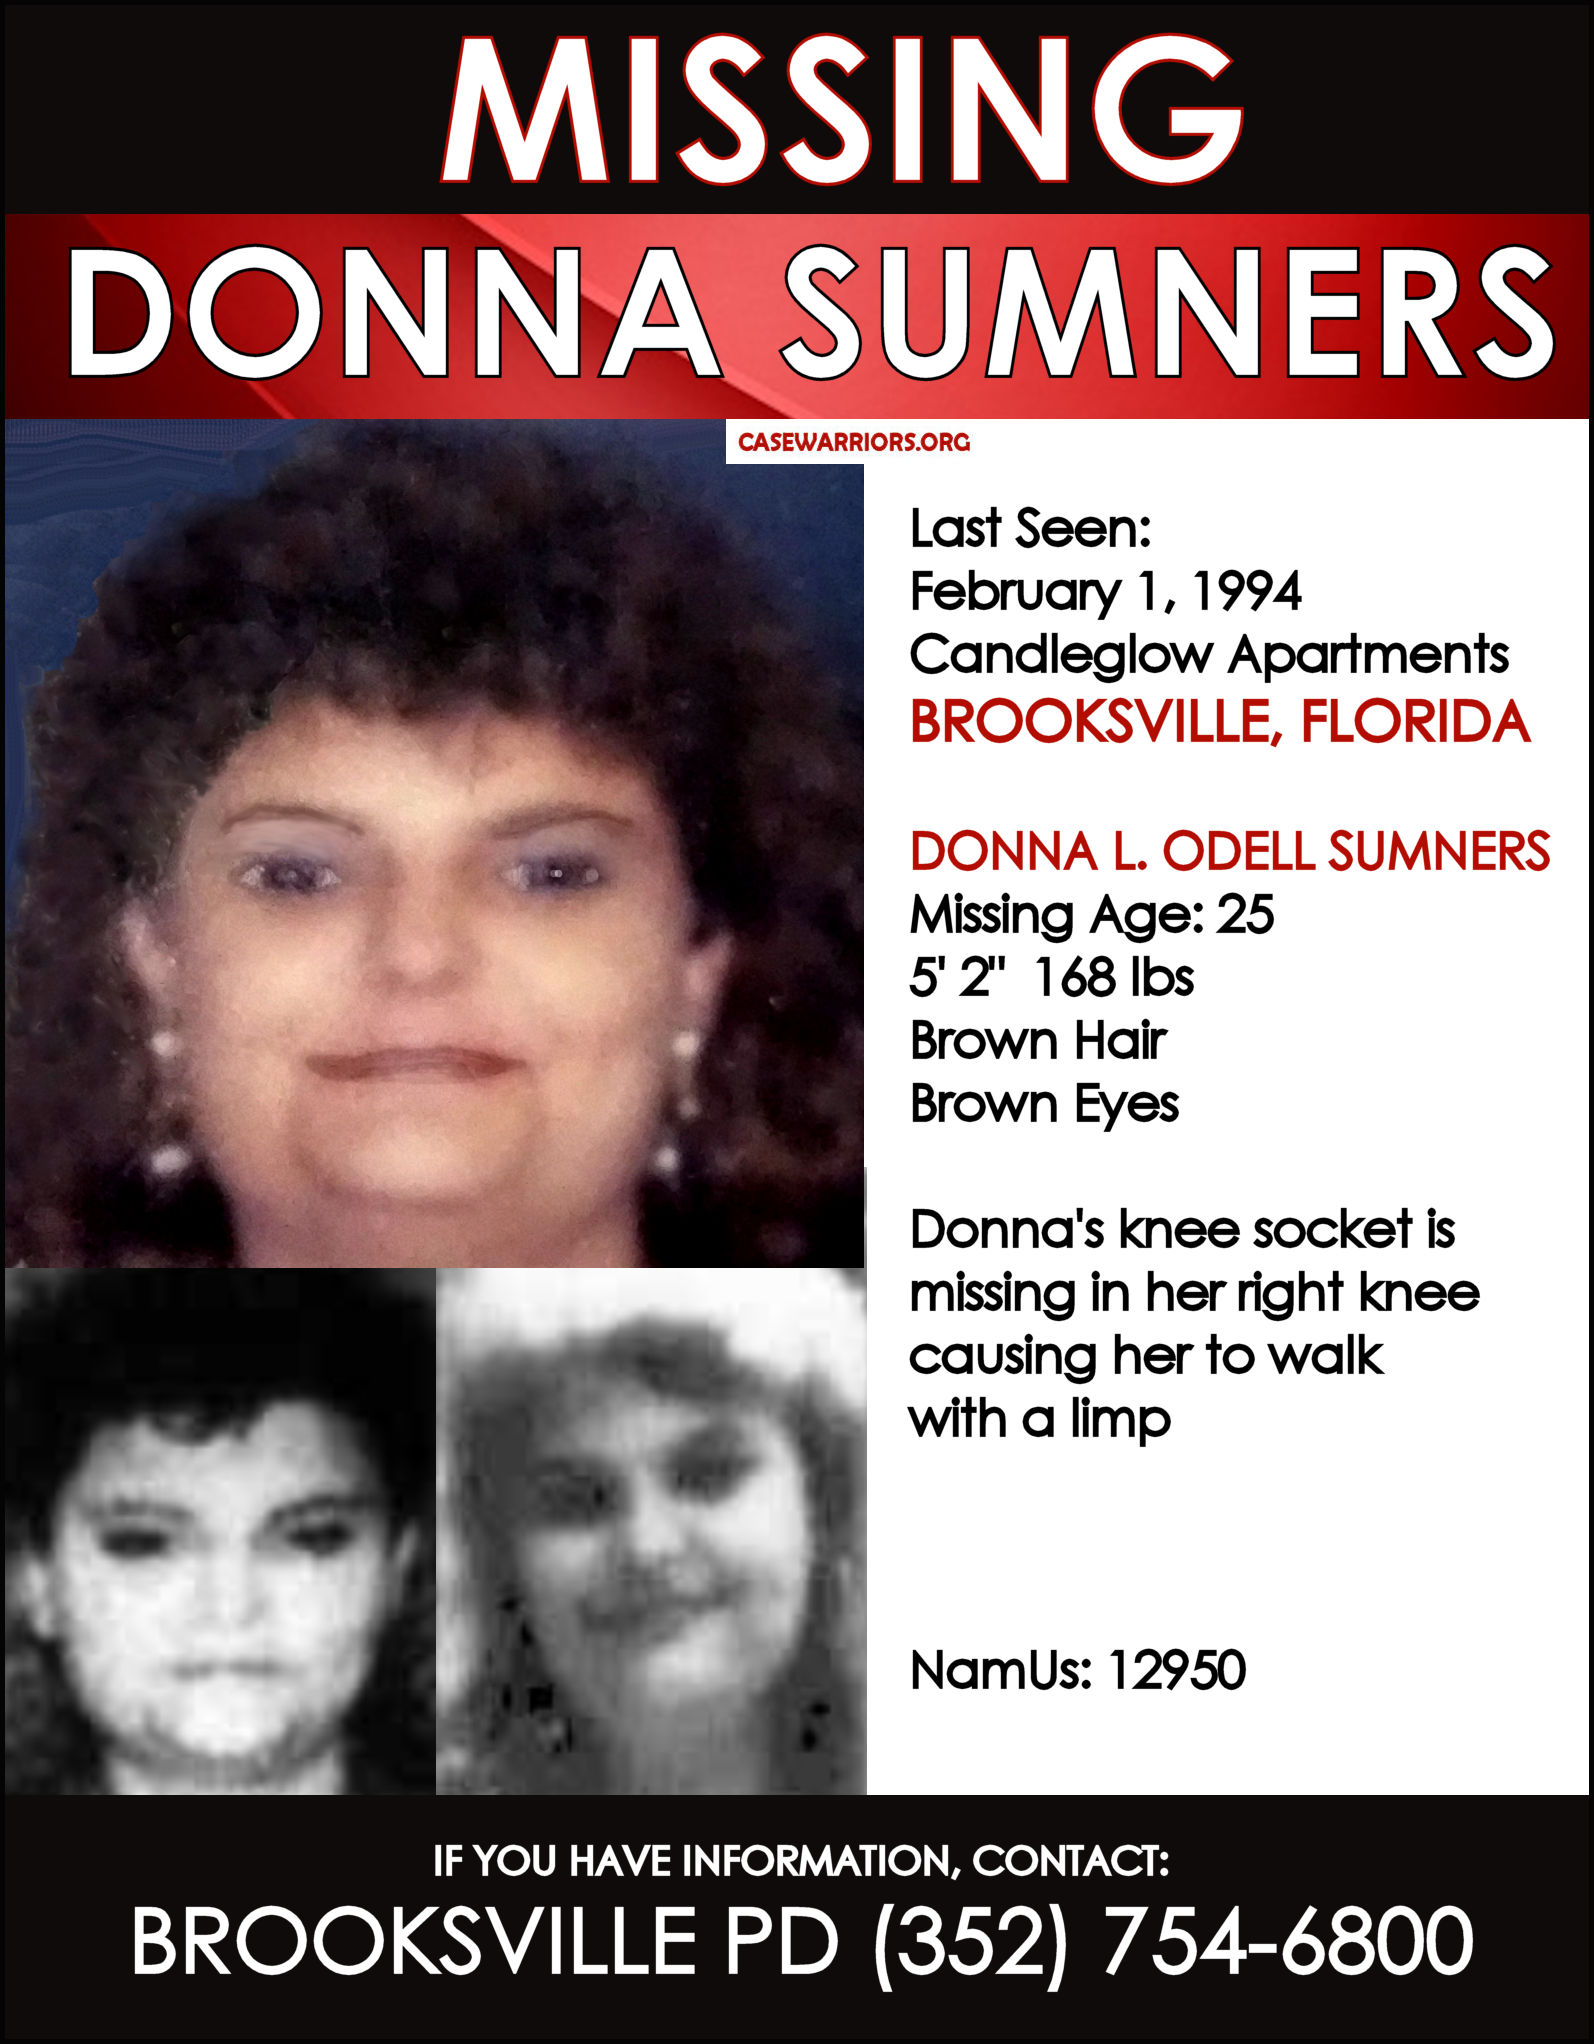 DONNA SUMNERS